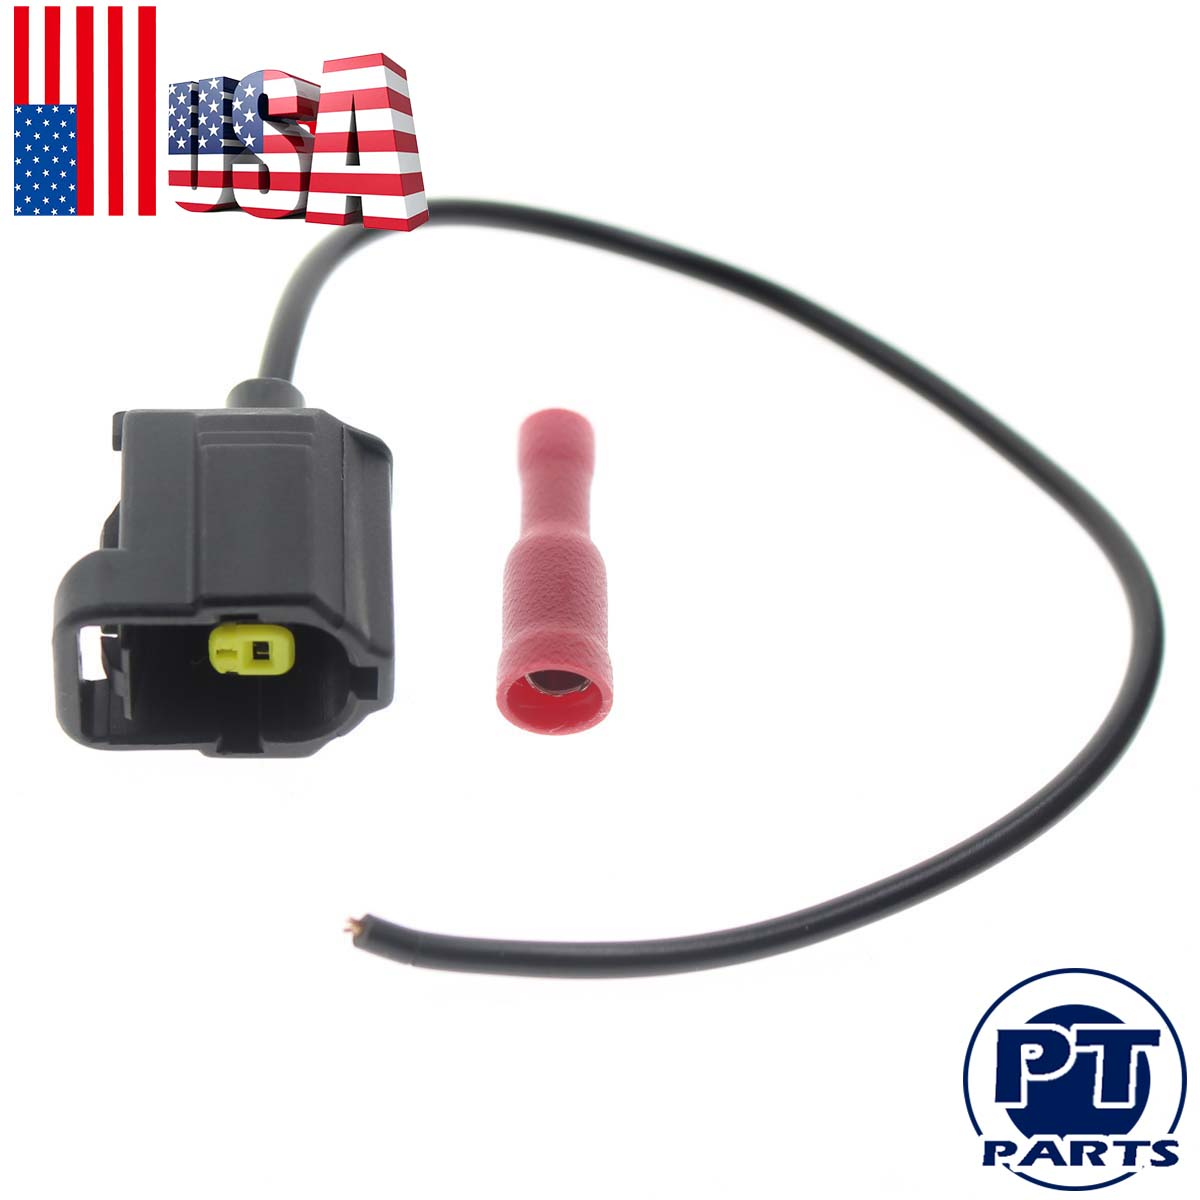 FOR 6.0L 6.4L Ford Powerstroke Diesel Engine Oil Pressure Switch Sensor Pigtail